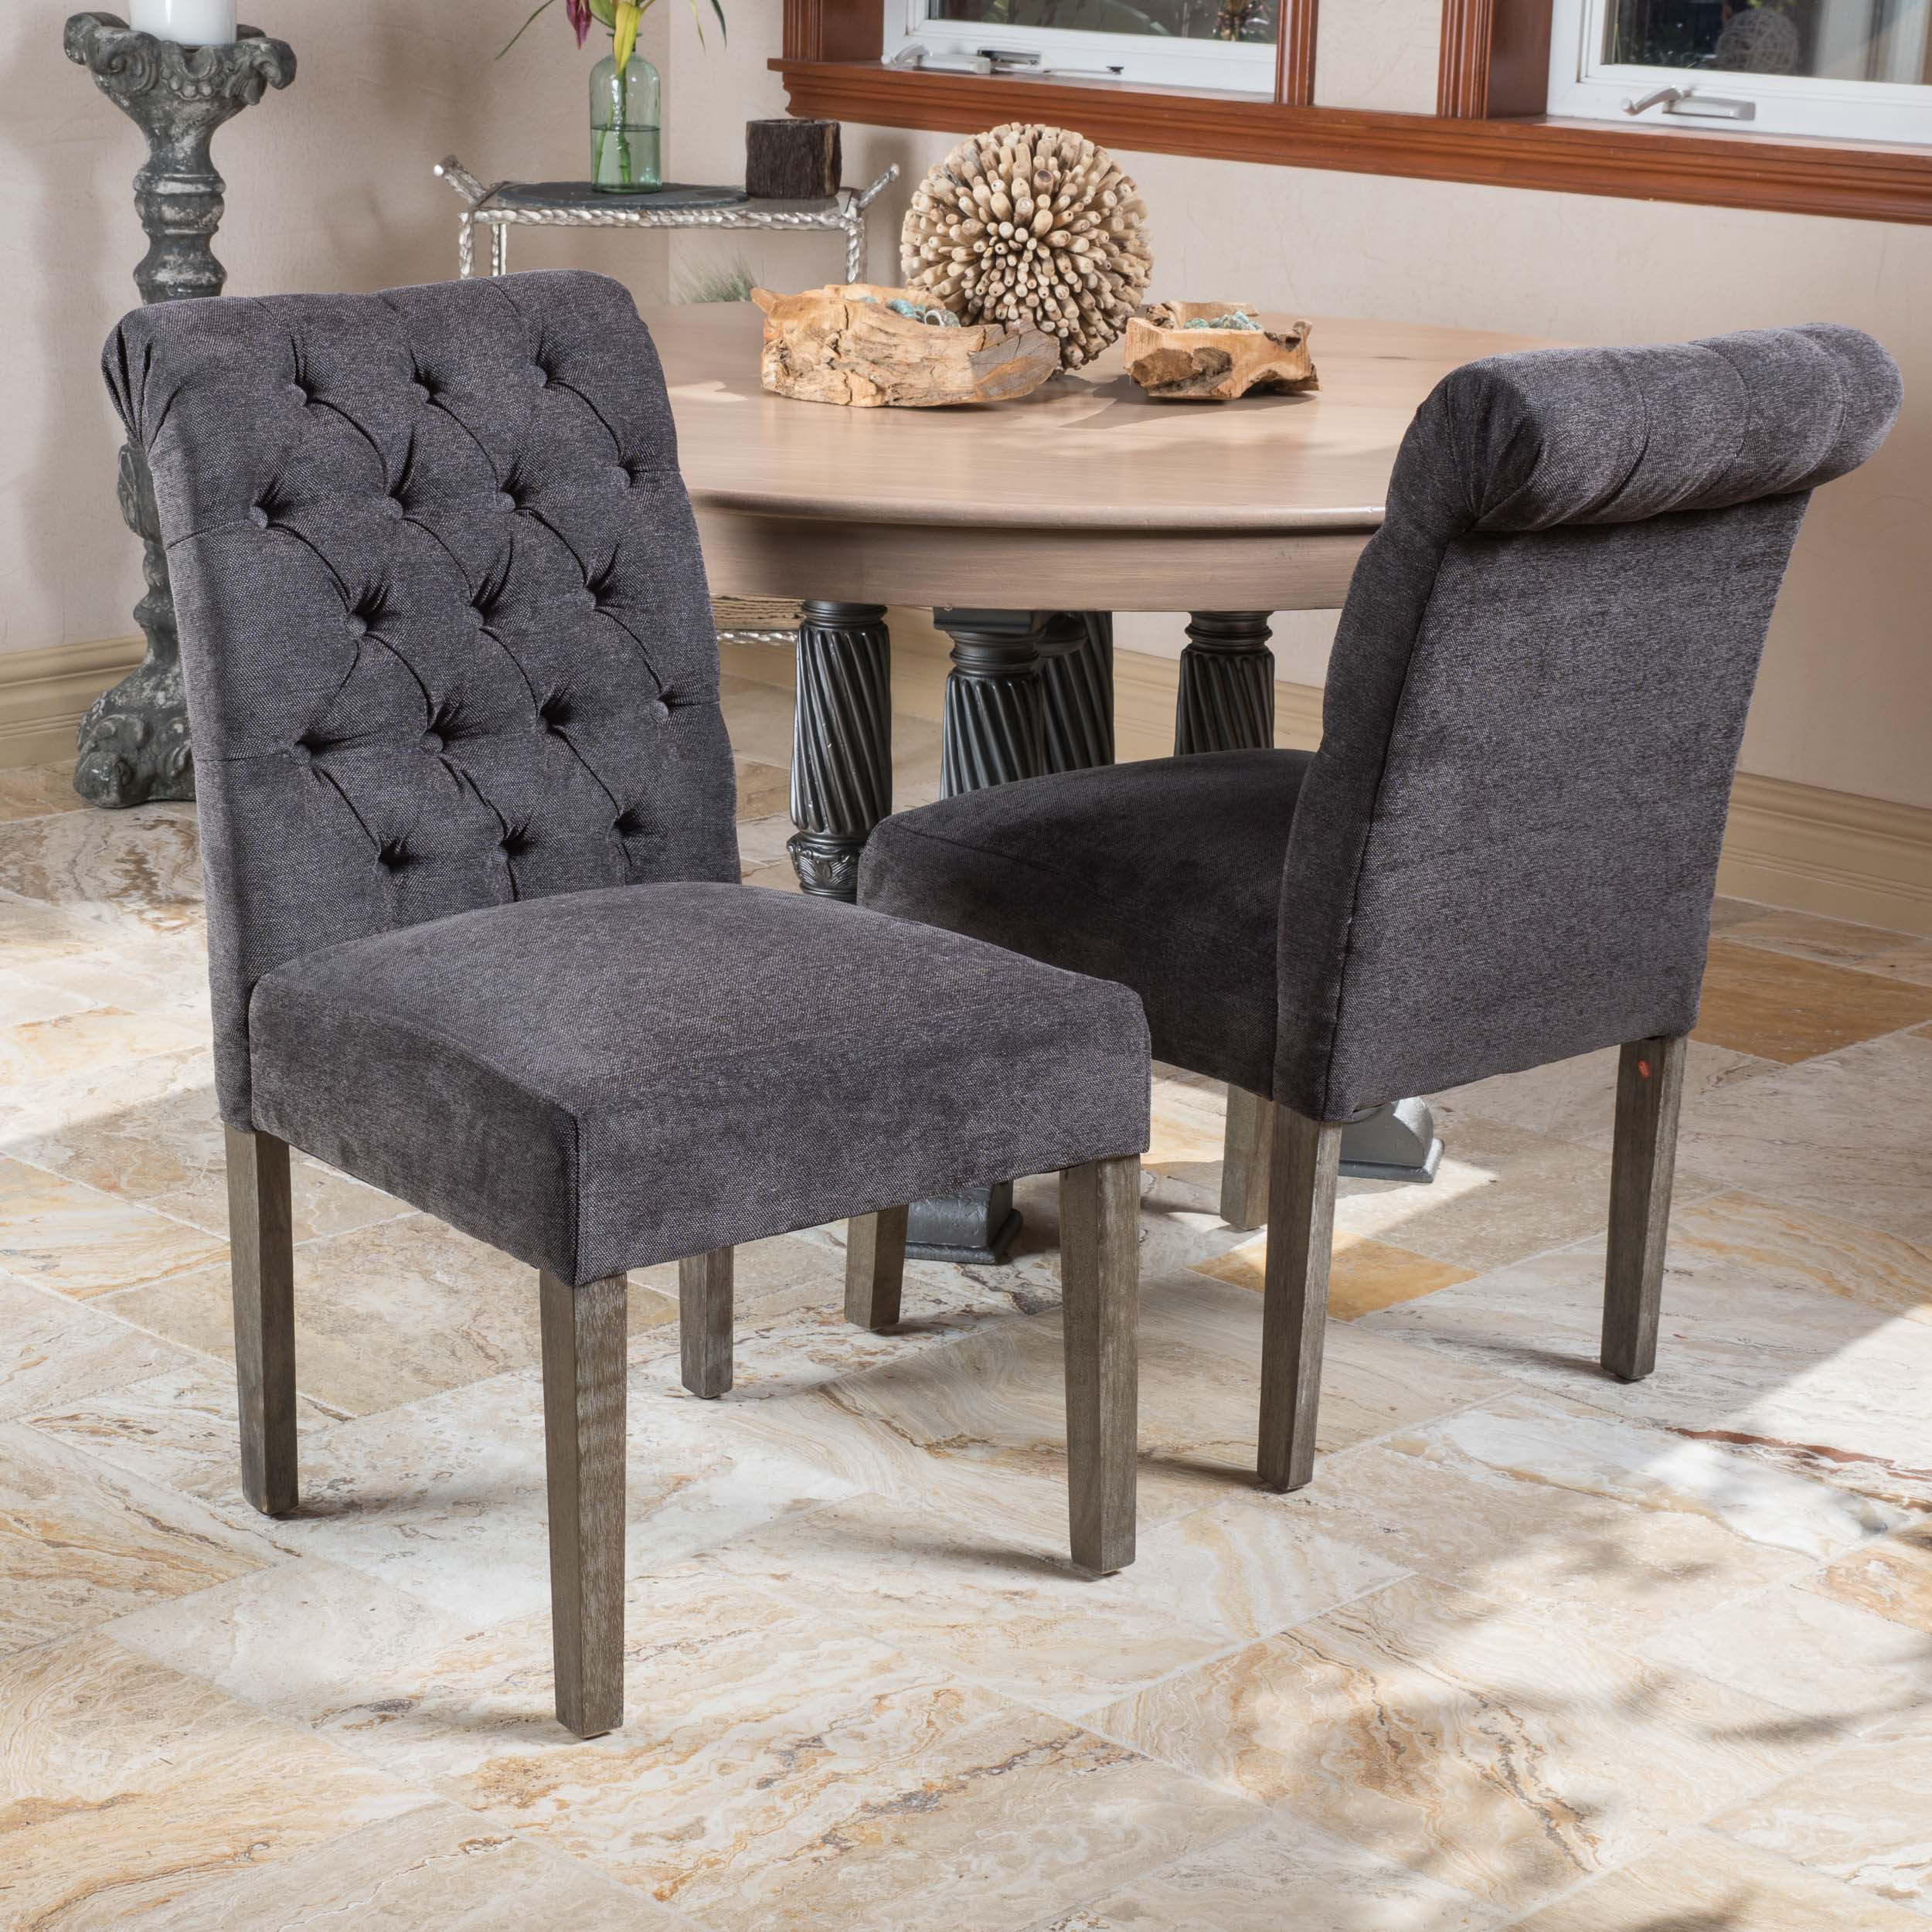 Grey Dining Room Chairs: Lillard Dark Grey Dining Chairs (Set Of 2)